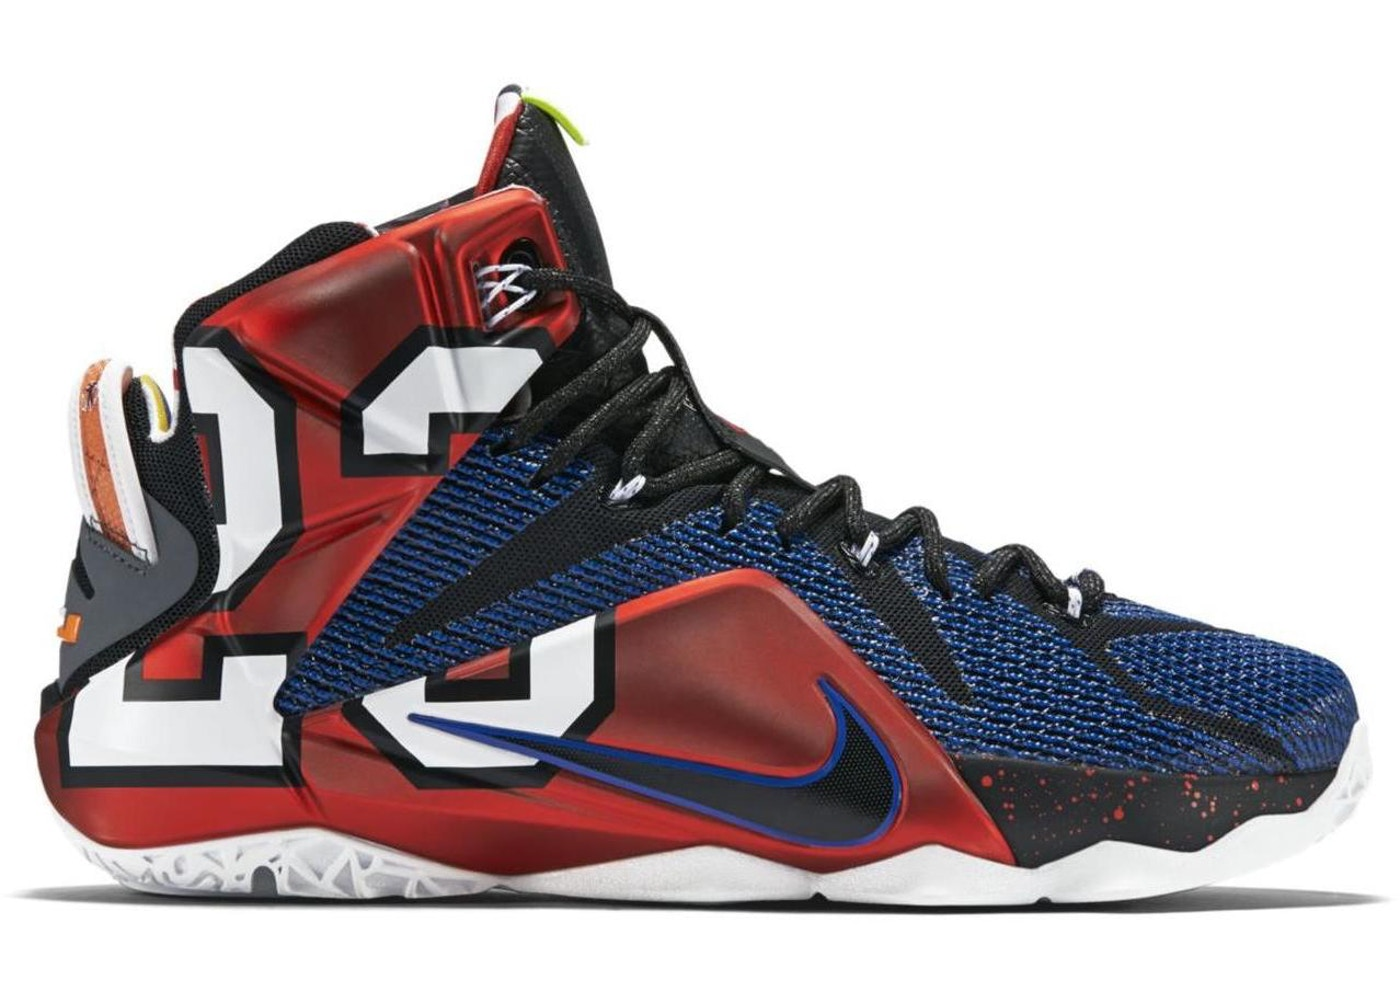 san francisco 14ad7 49a99 LeBron 12 What the LeBron - 802193-909 812511-909